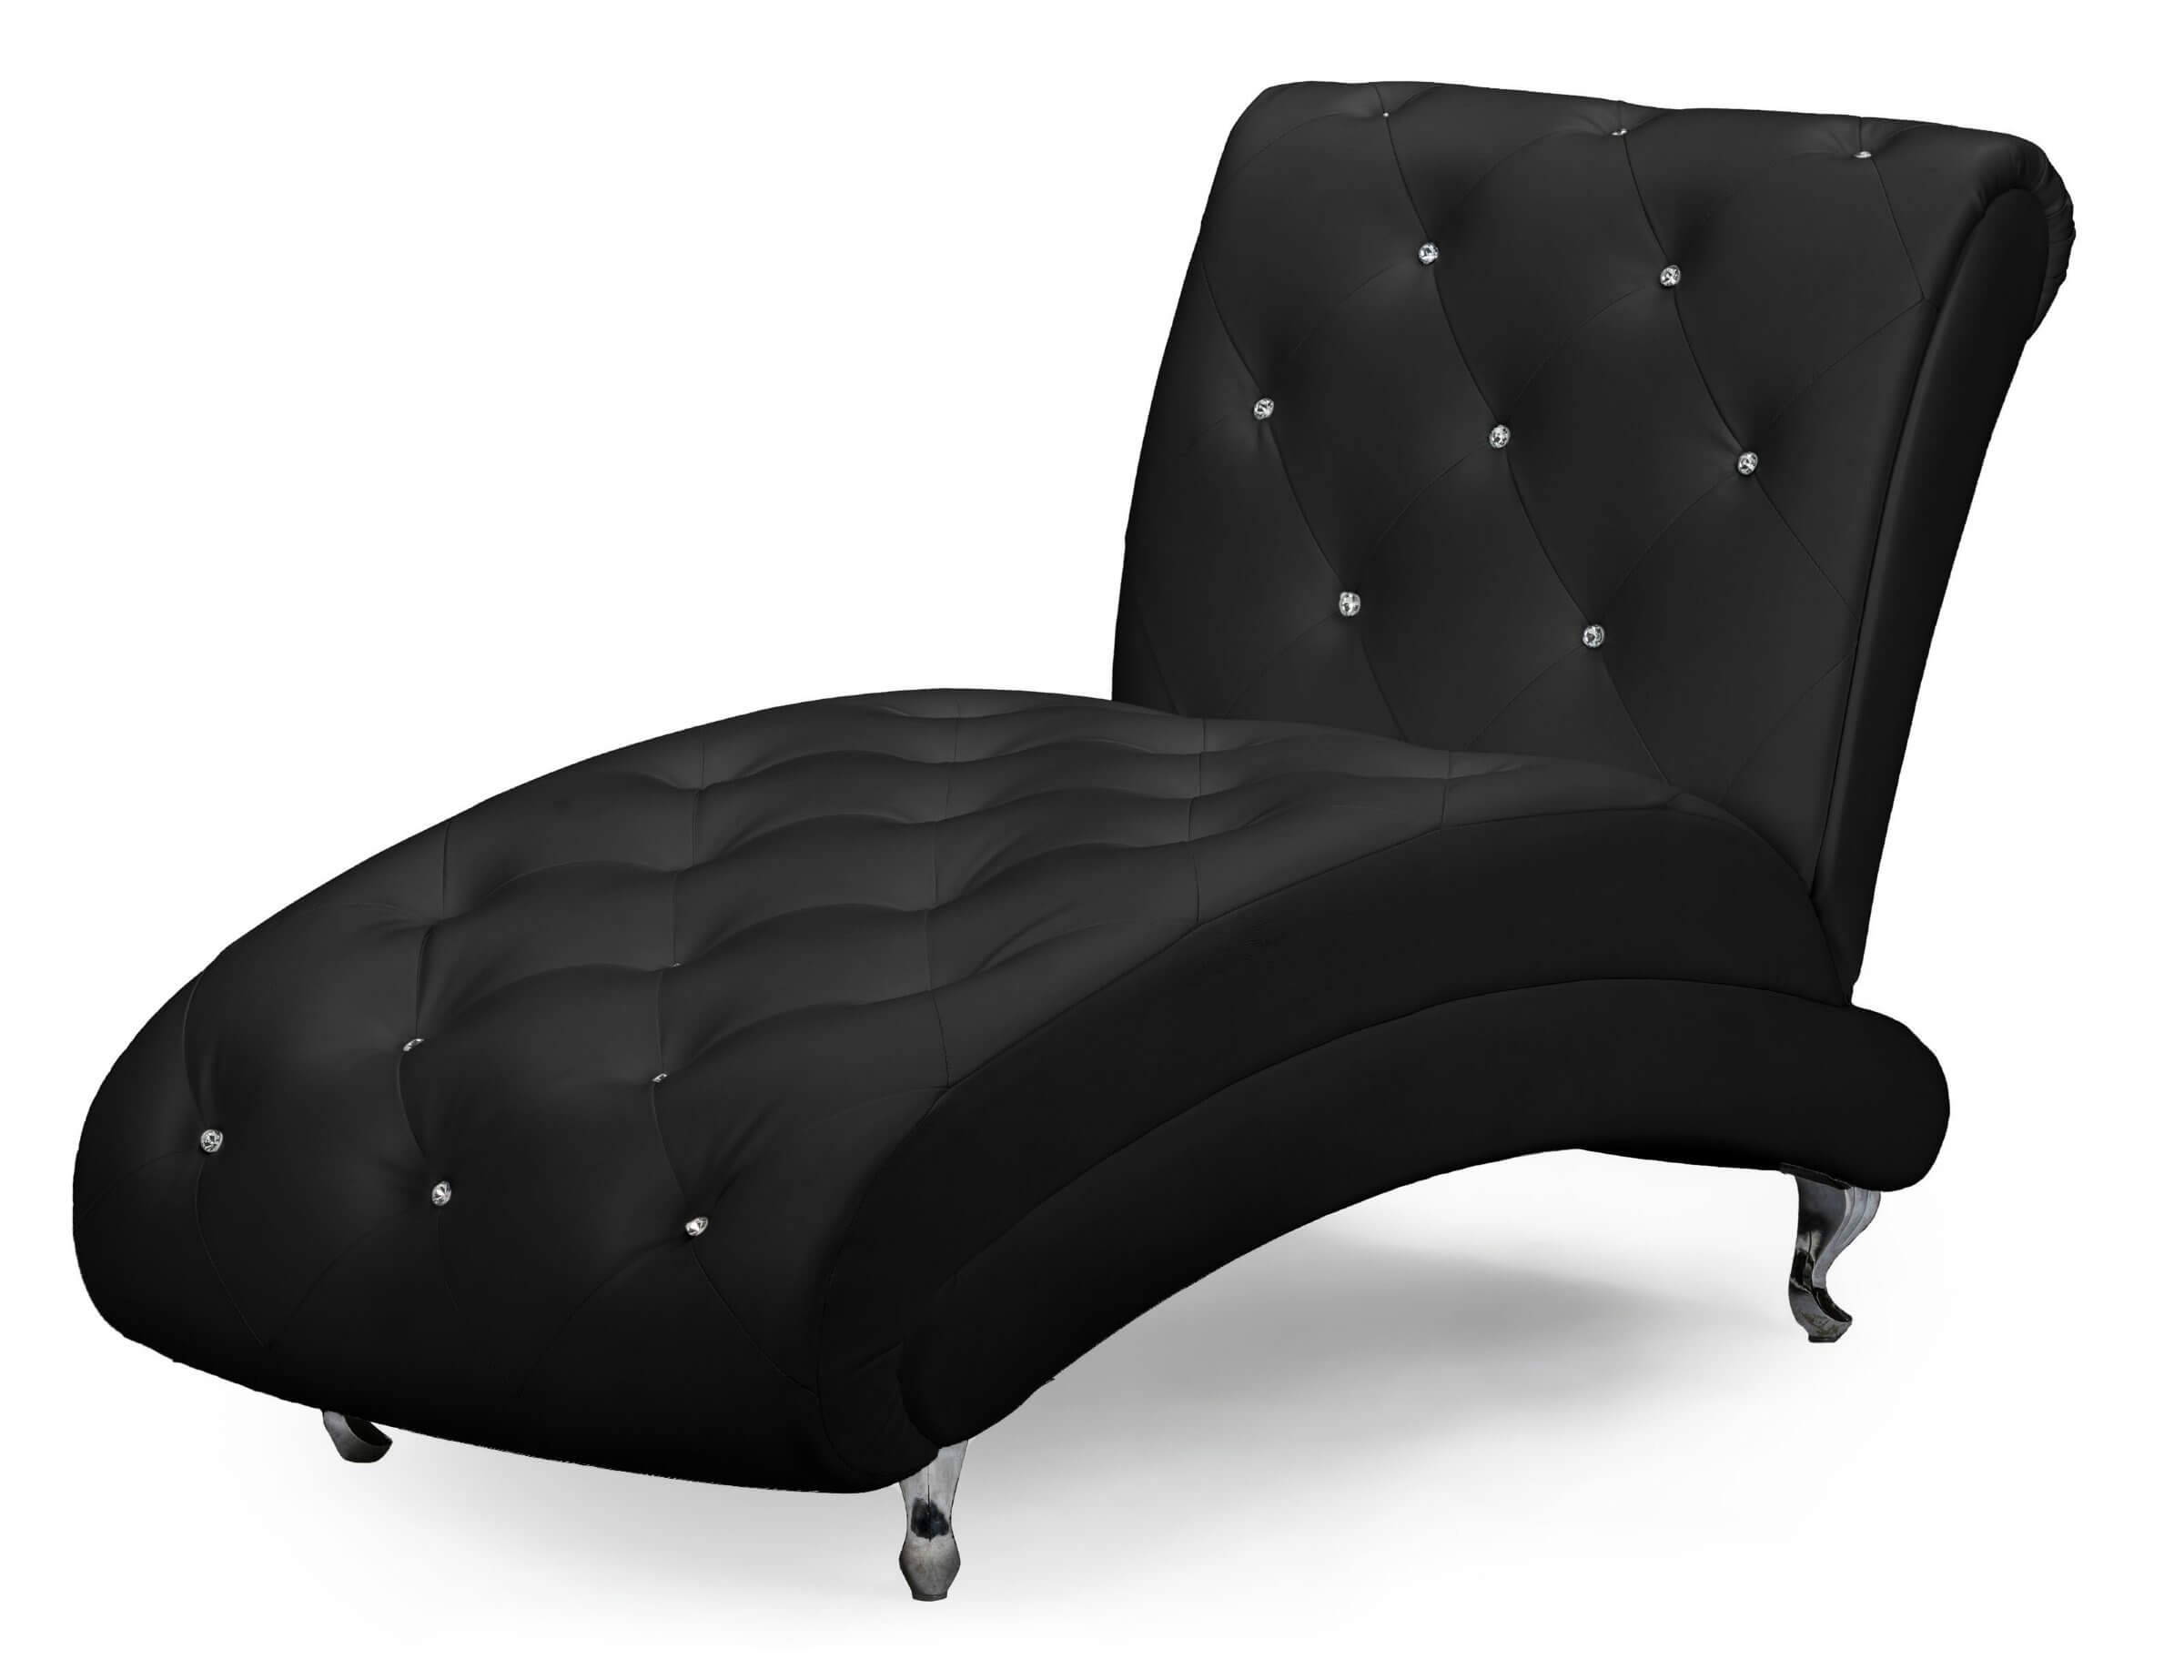 top 20 types of black chaise lounges buying guide. Black Bedroom Furniture Sets. Home Design Ideas